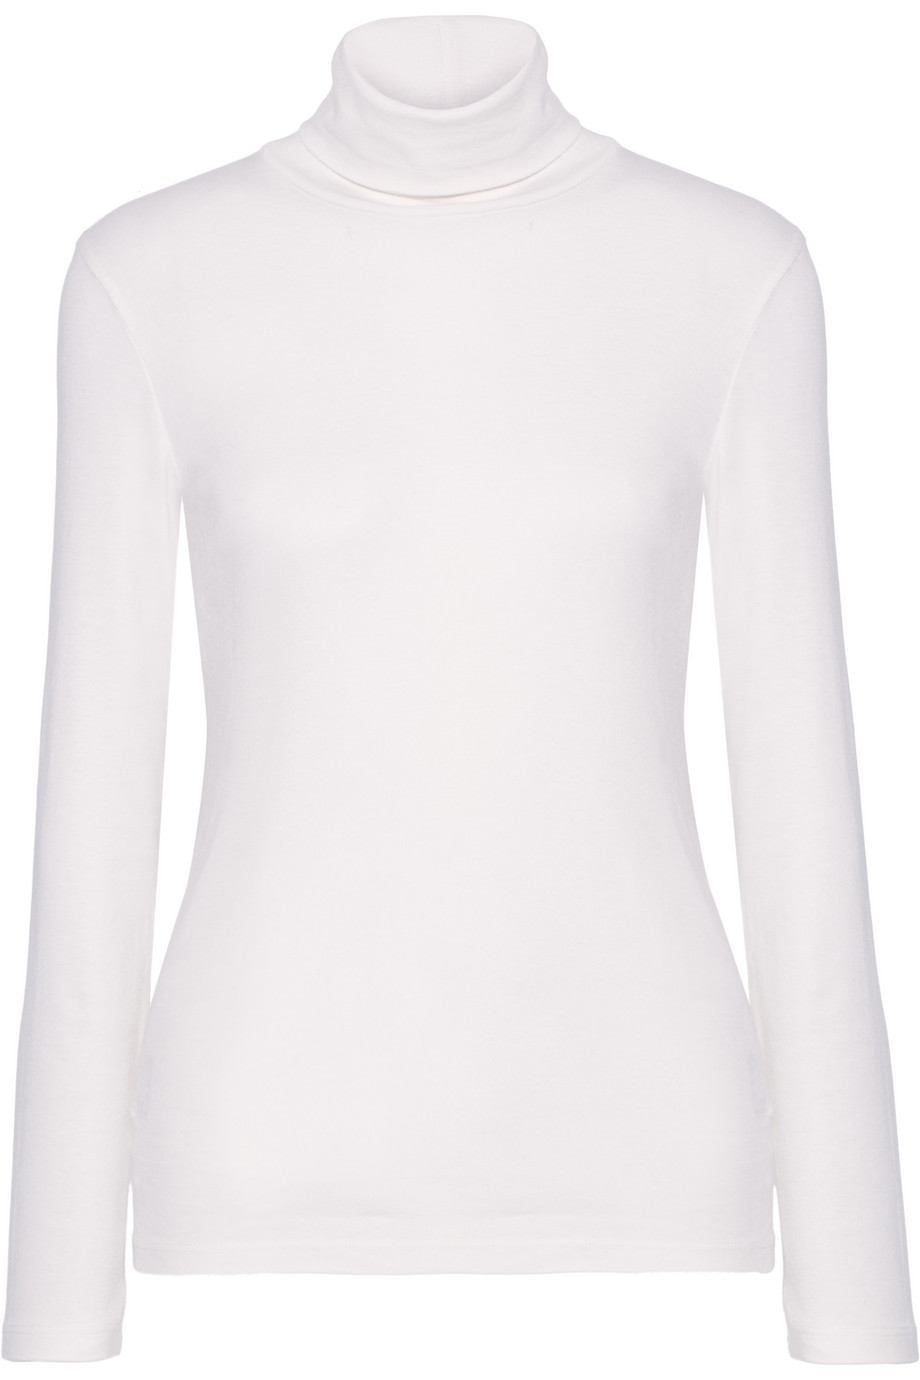 Splendid Supima Cotton and Micro Modal-Blend Turtleneck Top, Off-White, Women's, Size: XL